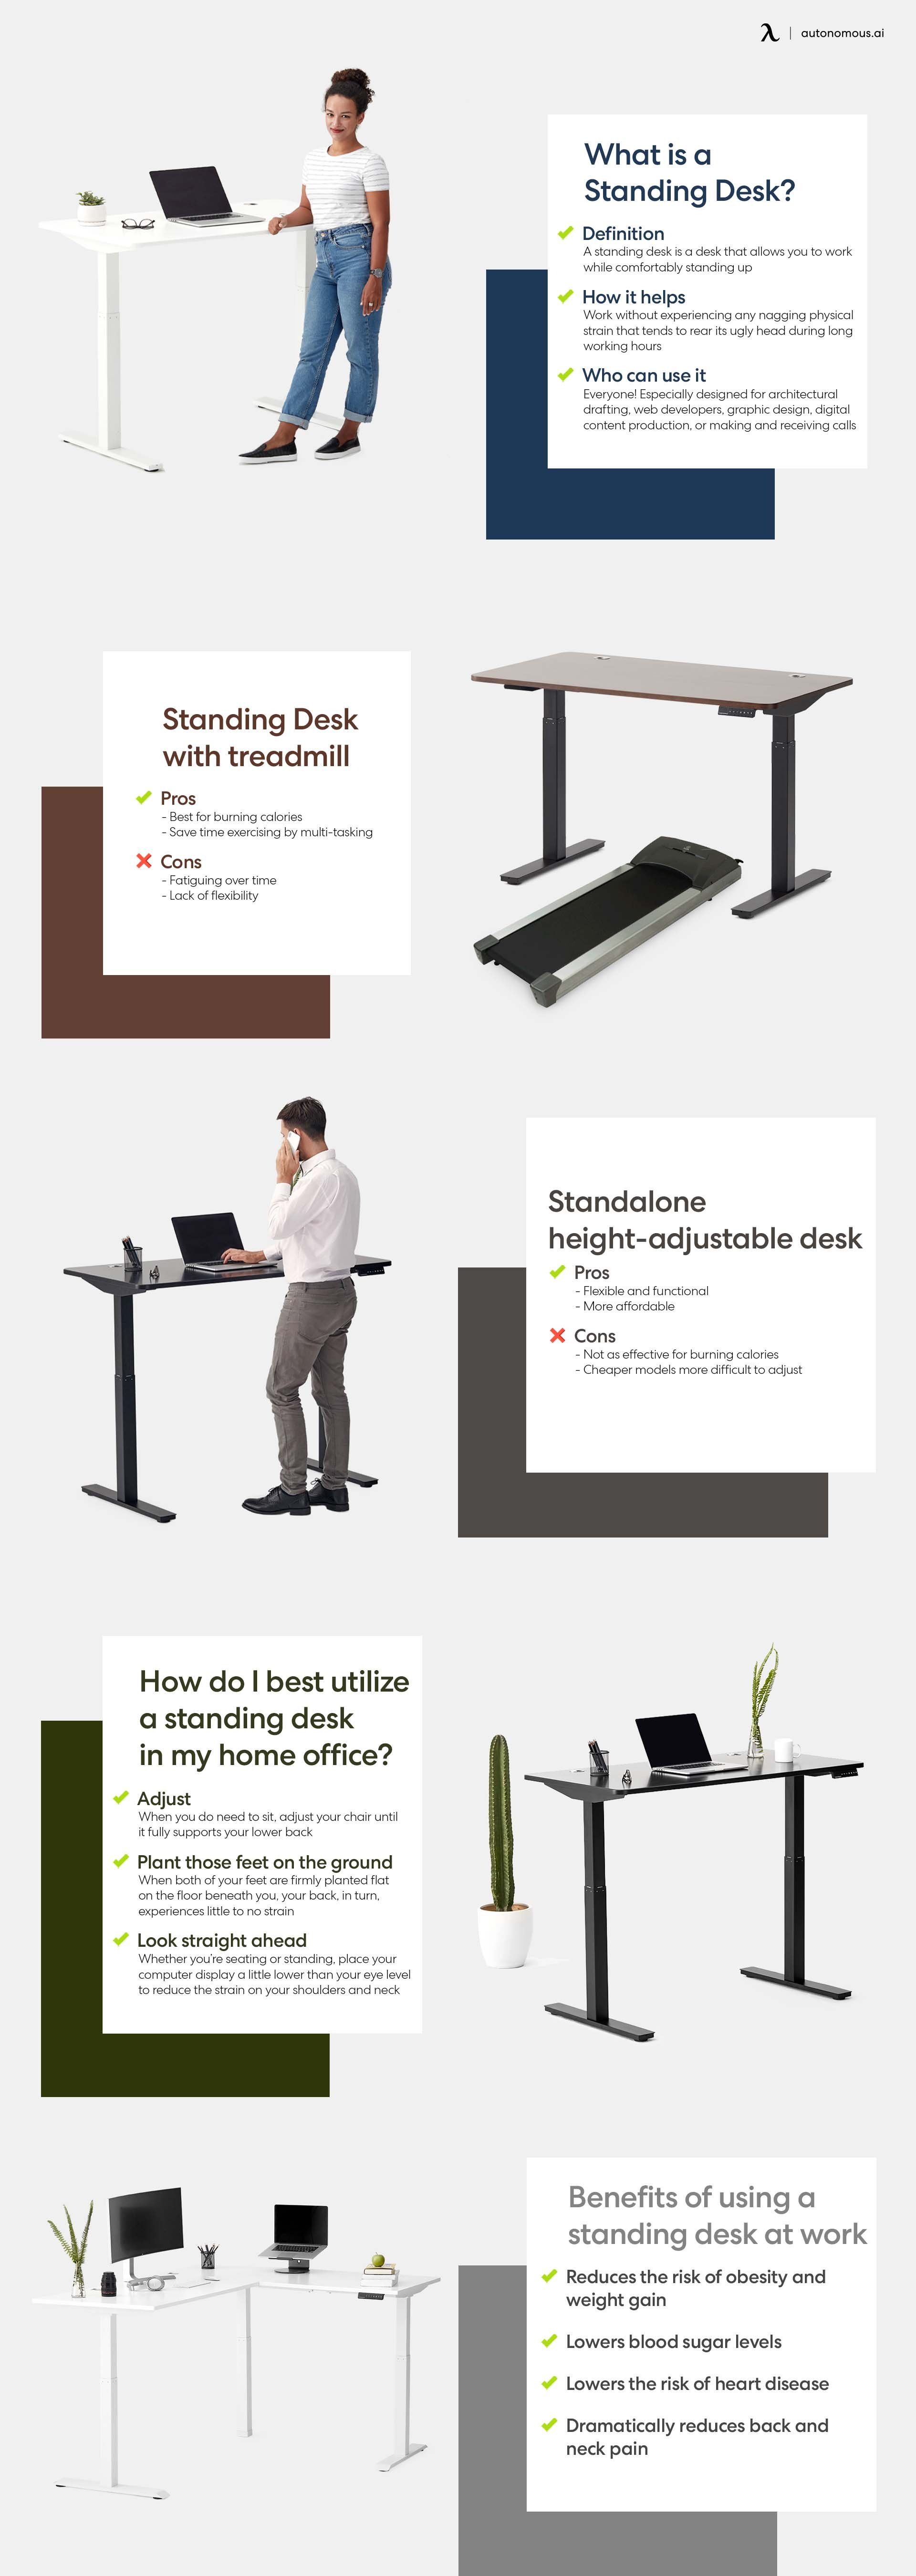 What is standing desk and its benefits